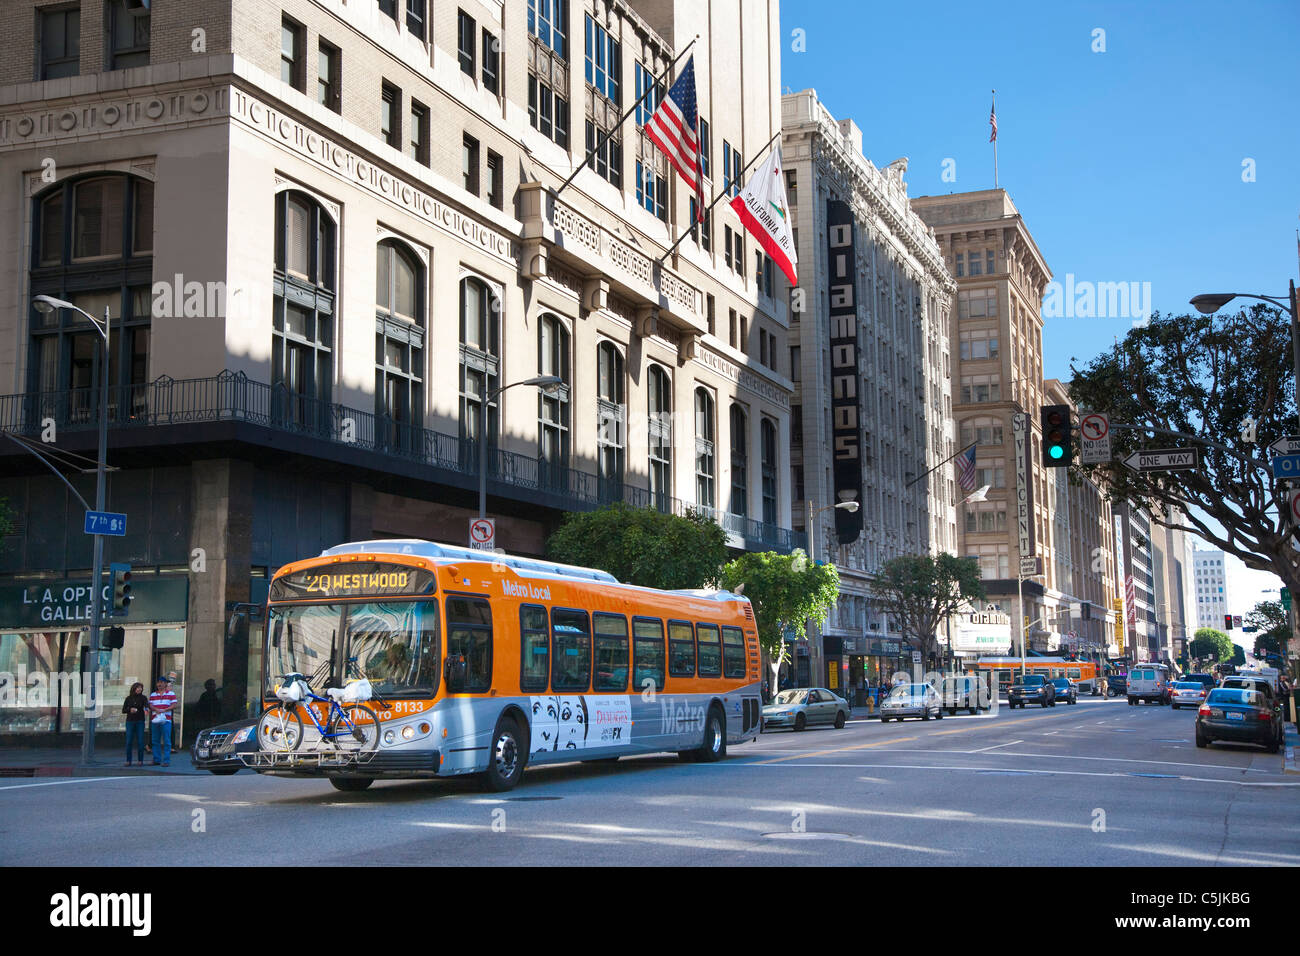 Public transport bus in Downtown, Los Angeles, California, USA - Stock Image